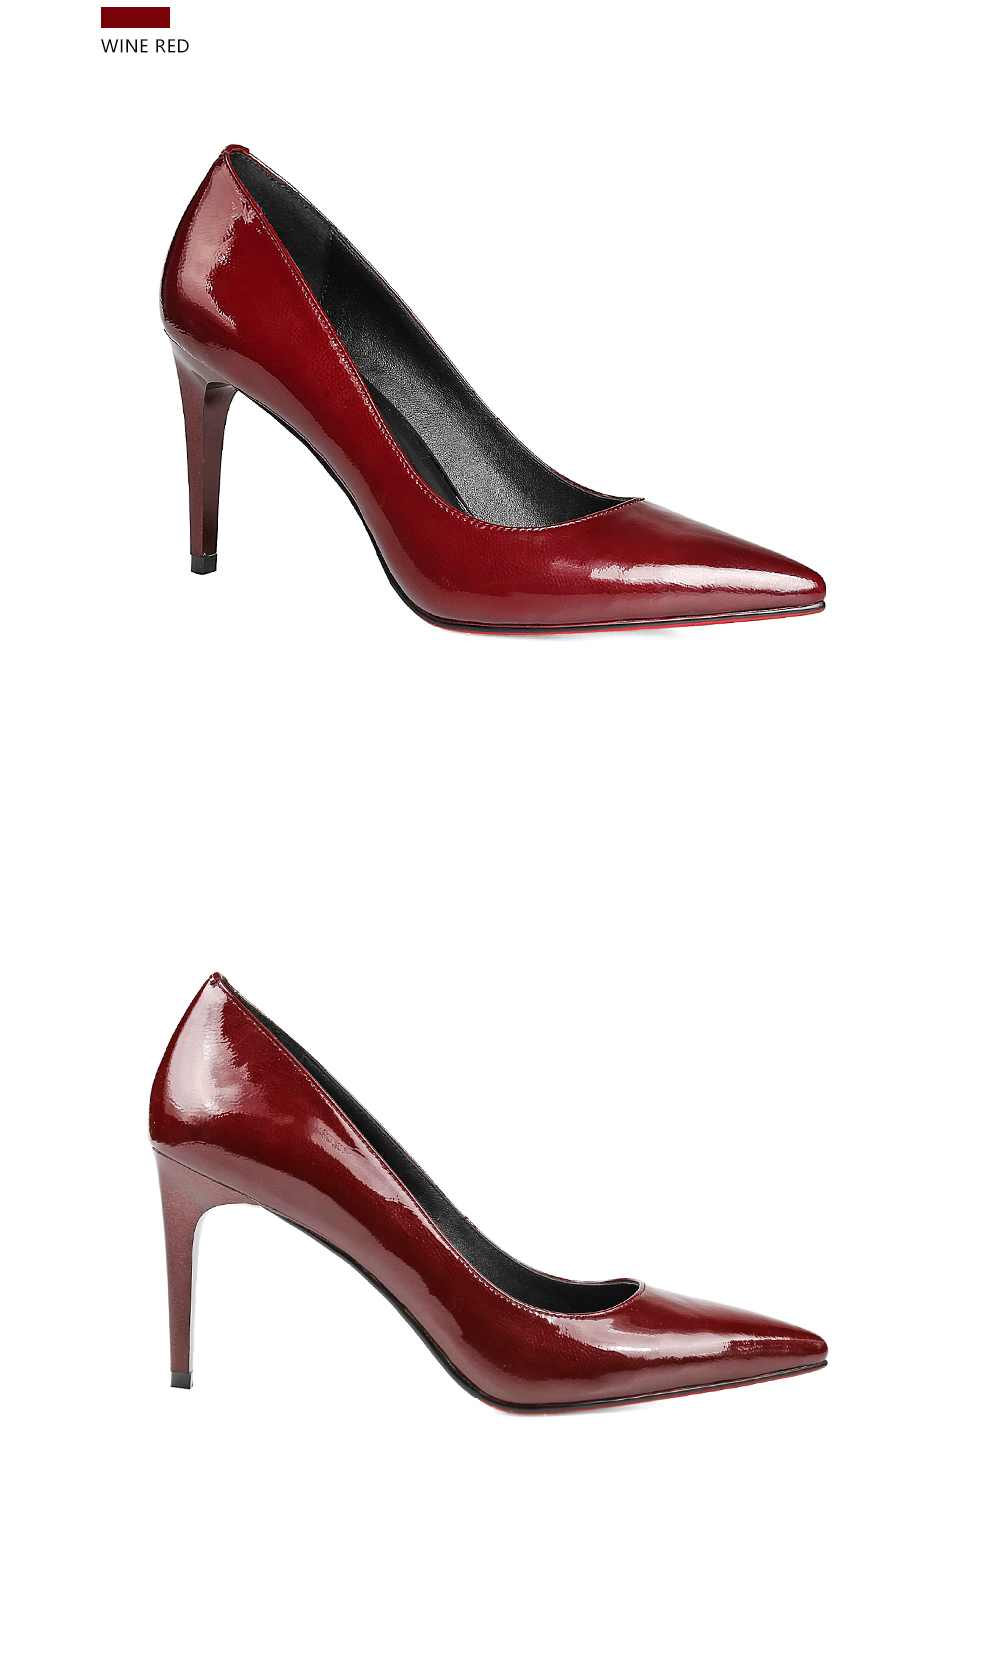 SOPHITINA Elegant Pumps Bordeaux Patent Leather Thin Heels Pointed ... 737a44067f35